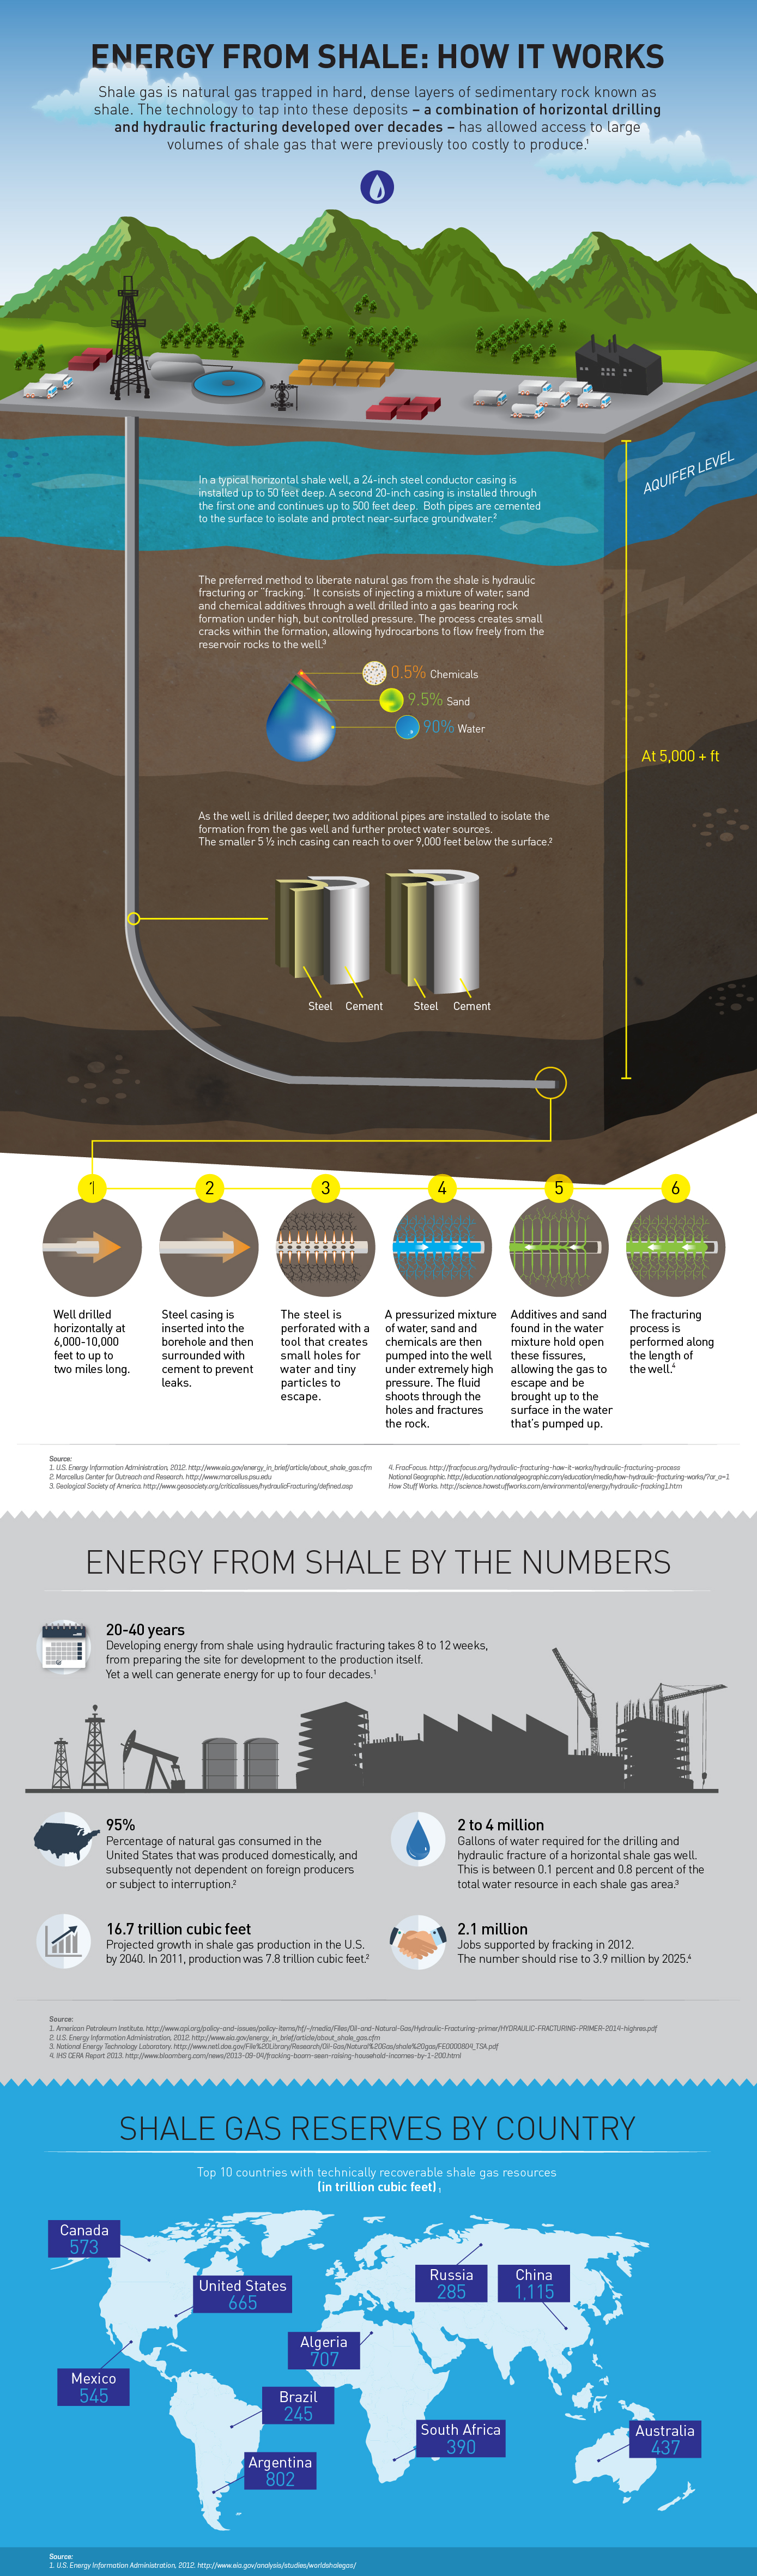 this-is-how-fracking-works_551229b62f2ca-2